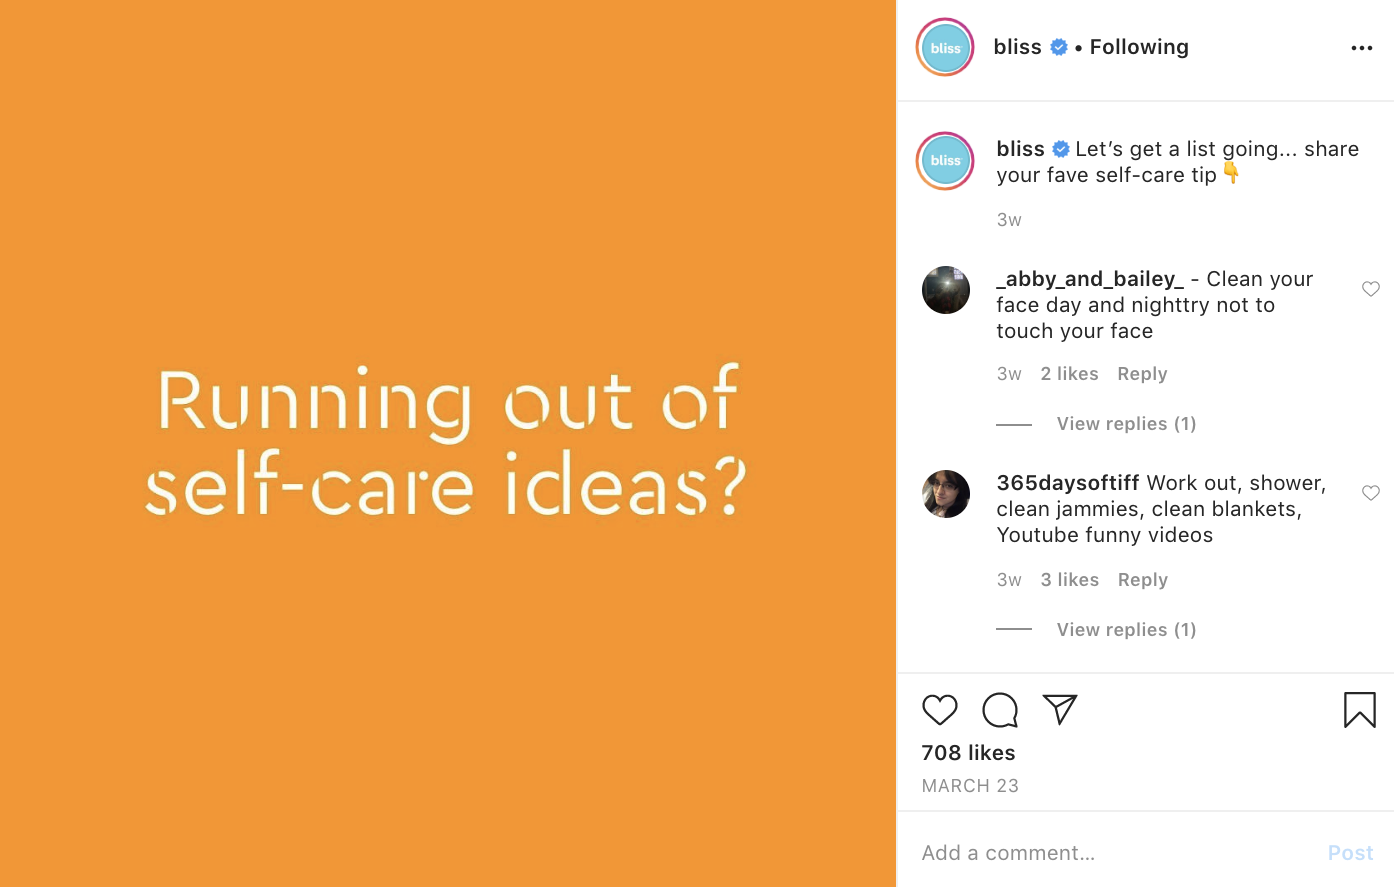 Bliss curating self-care ideas from their Instagram followers.